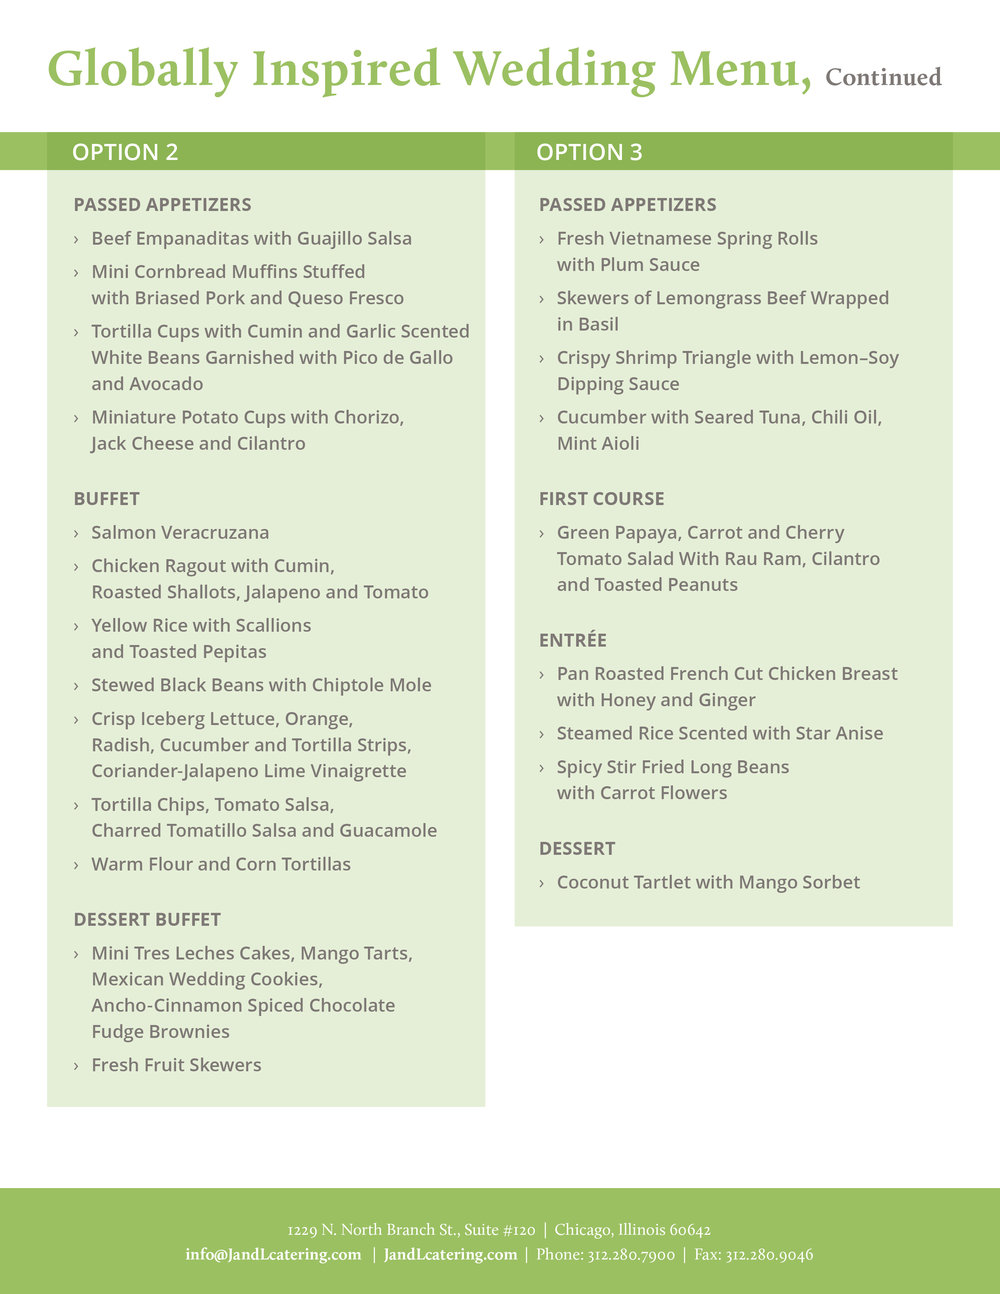 J&L_WeddingGloballyInspiredMenu-2.jpg